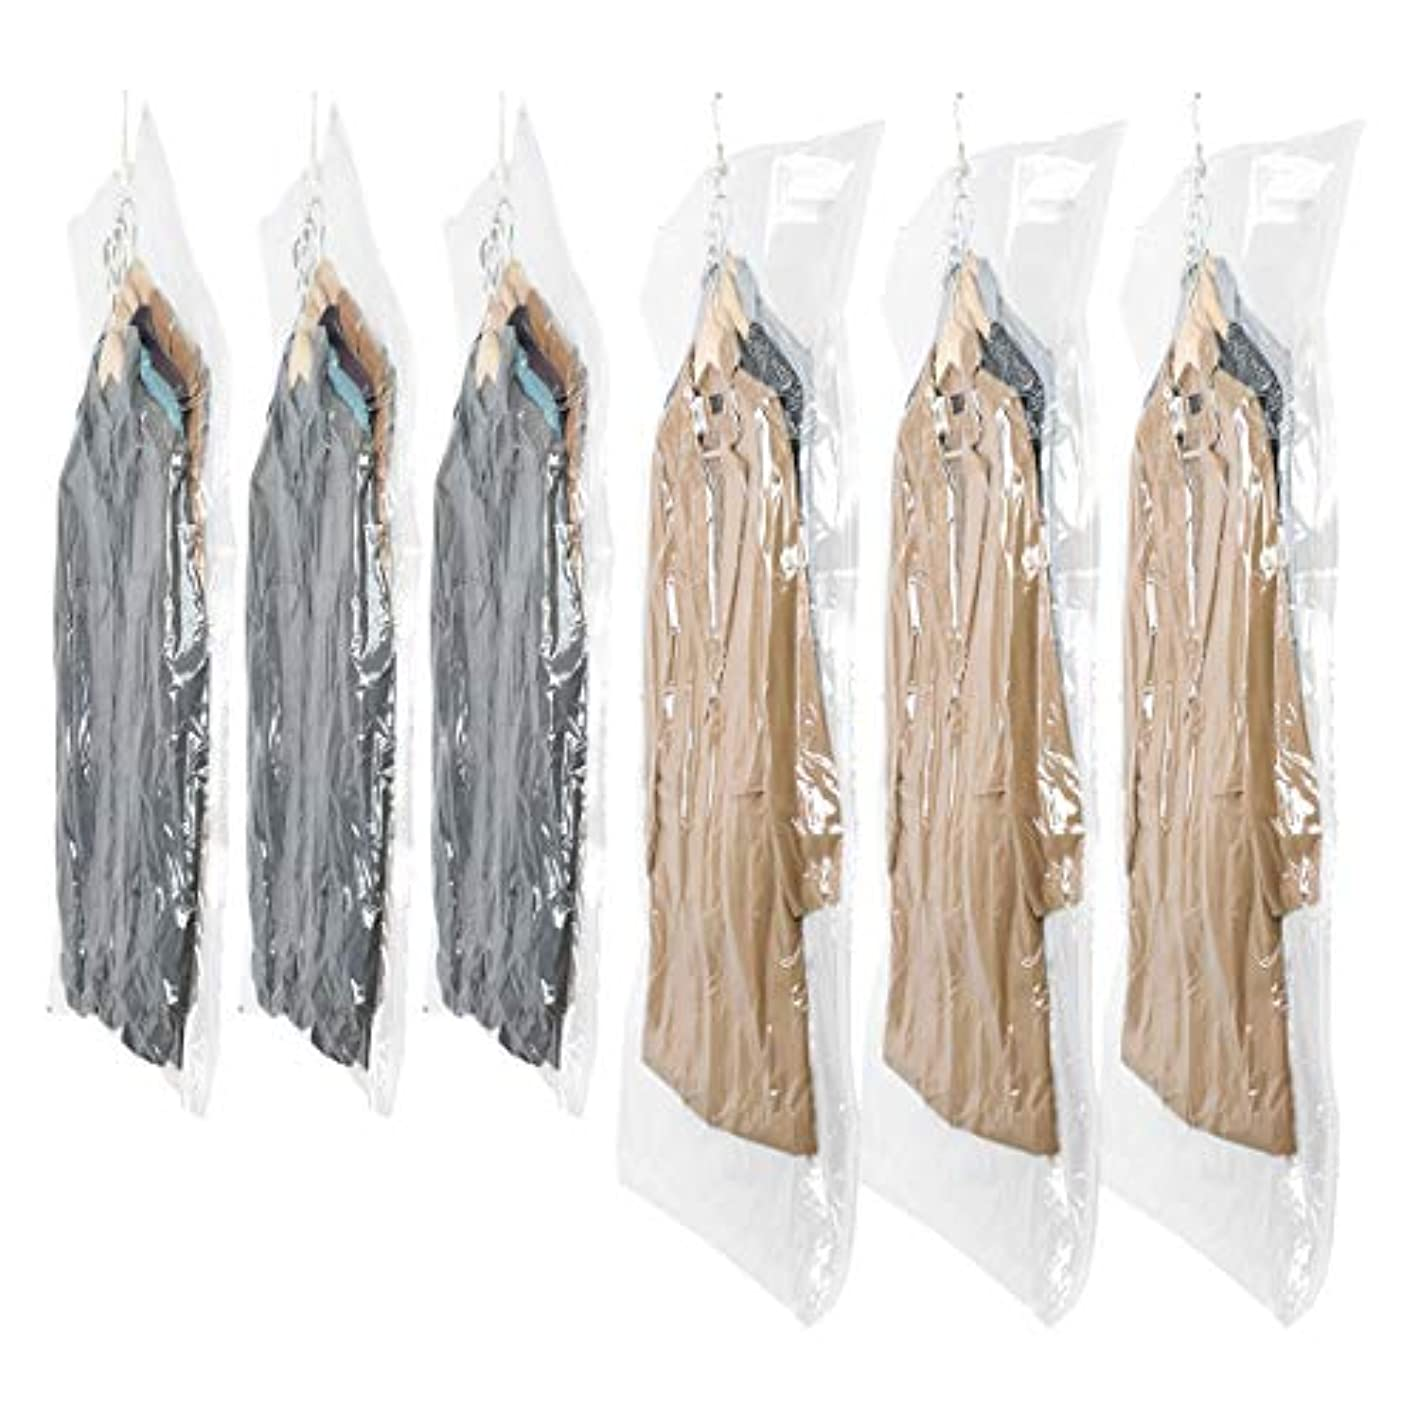 SunHorde Hanging Vacuum Storage Bags Space Saver Bags for Clothes, Pack of 6 (3 Large & 3 Medium), Clear Hanging Garment Bags for Closet